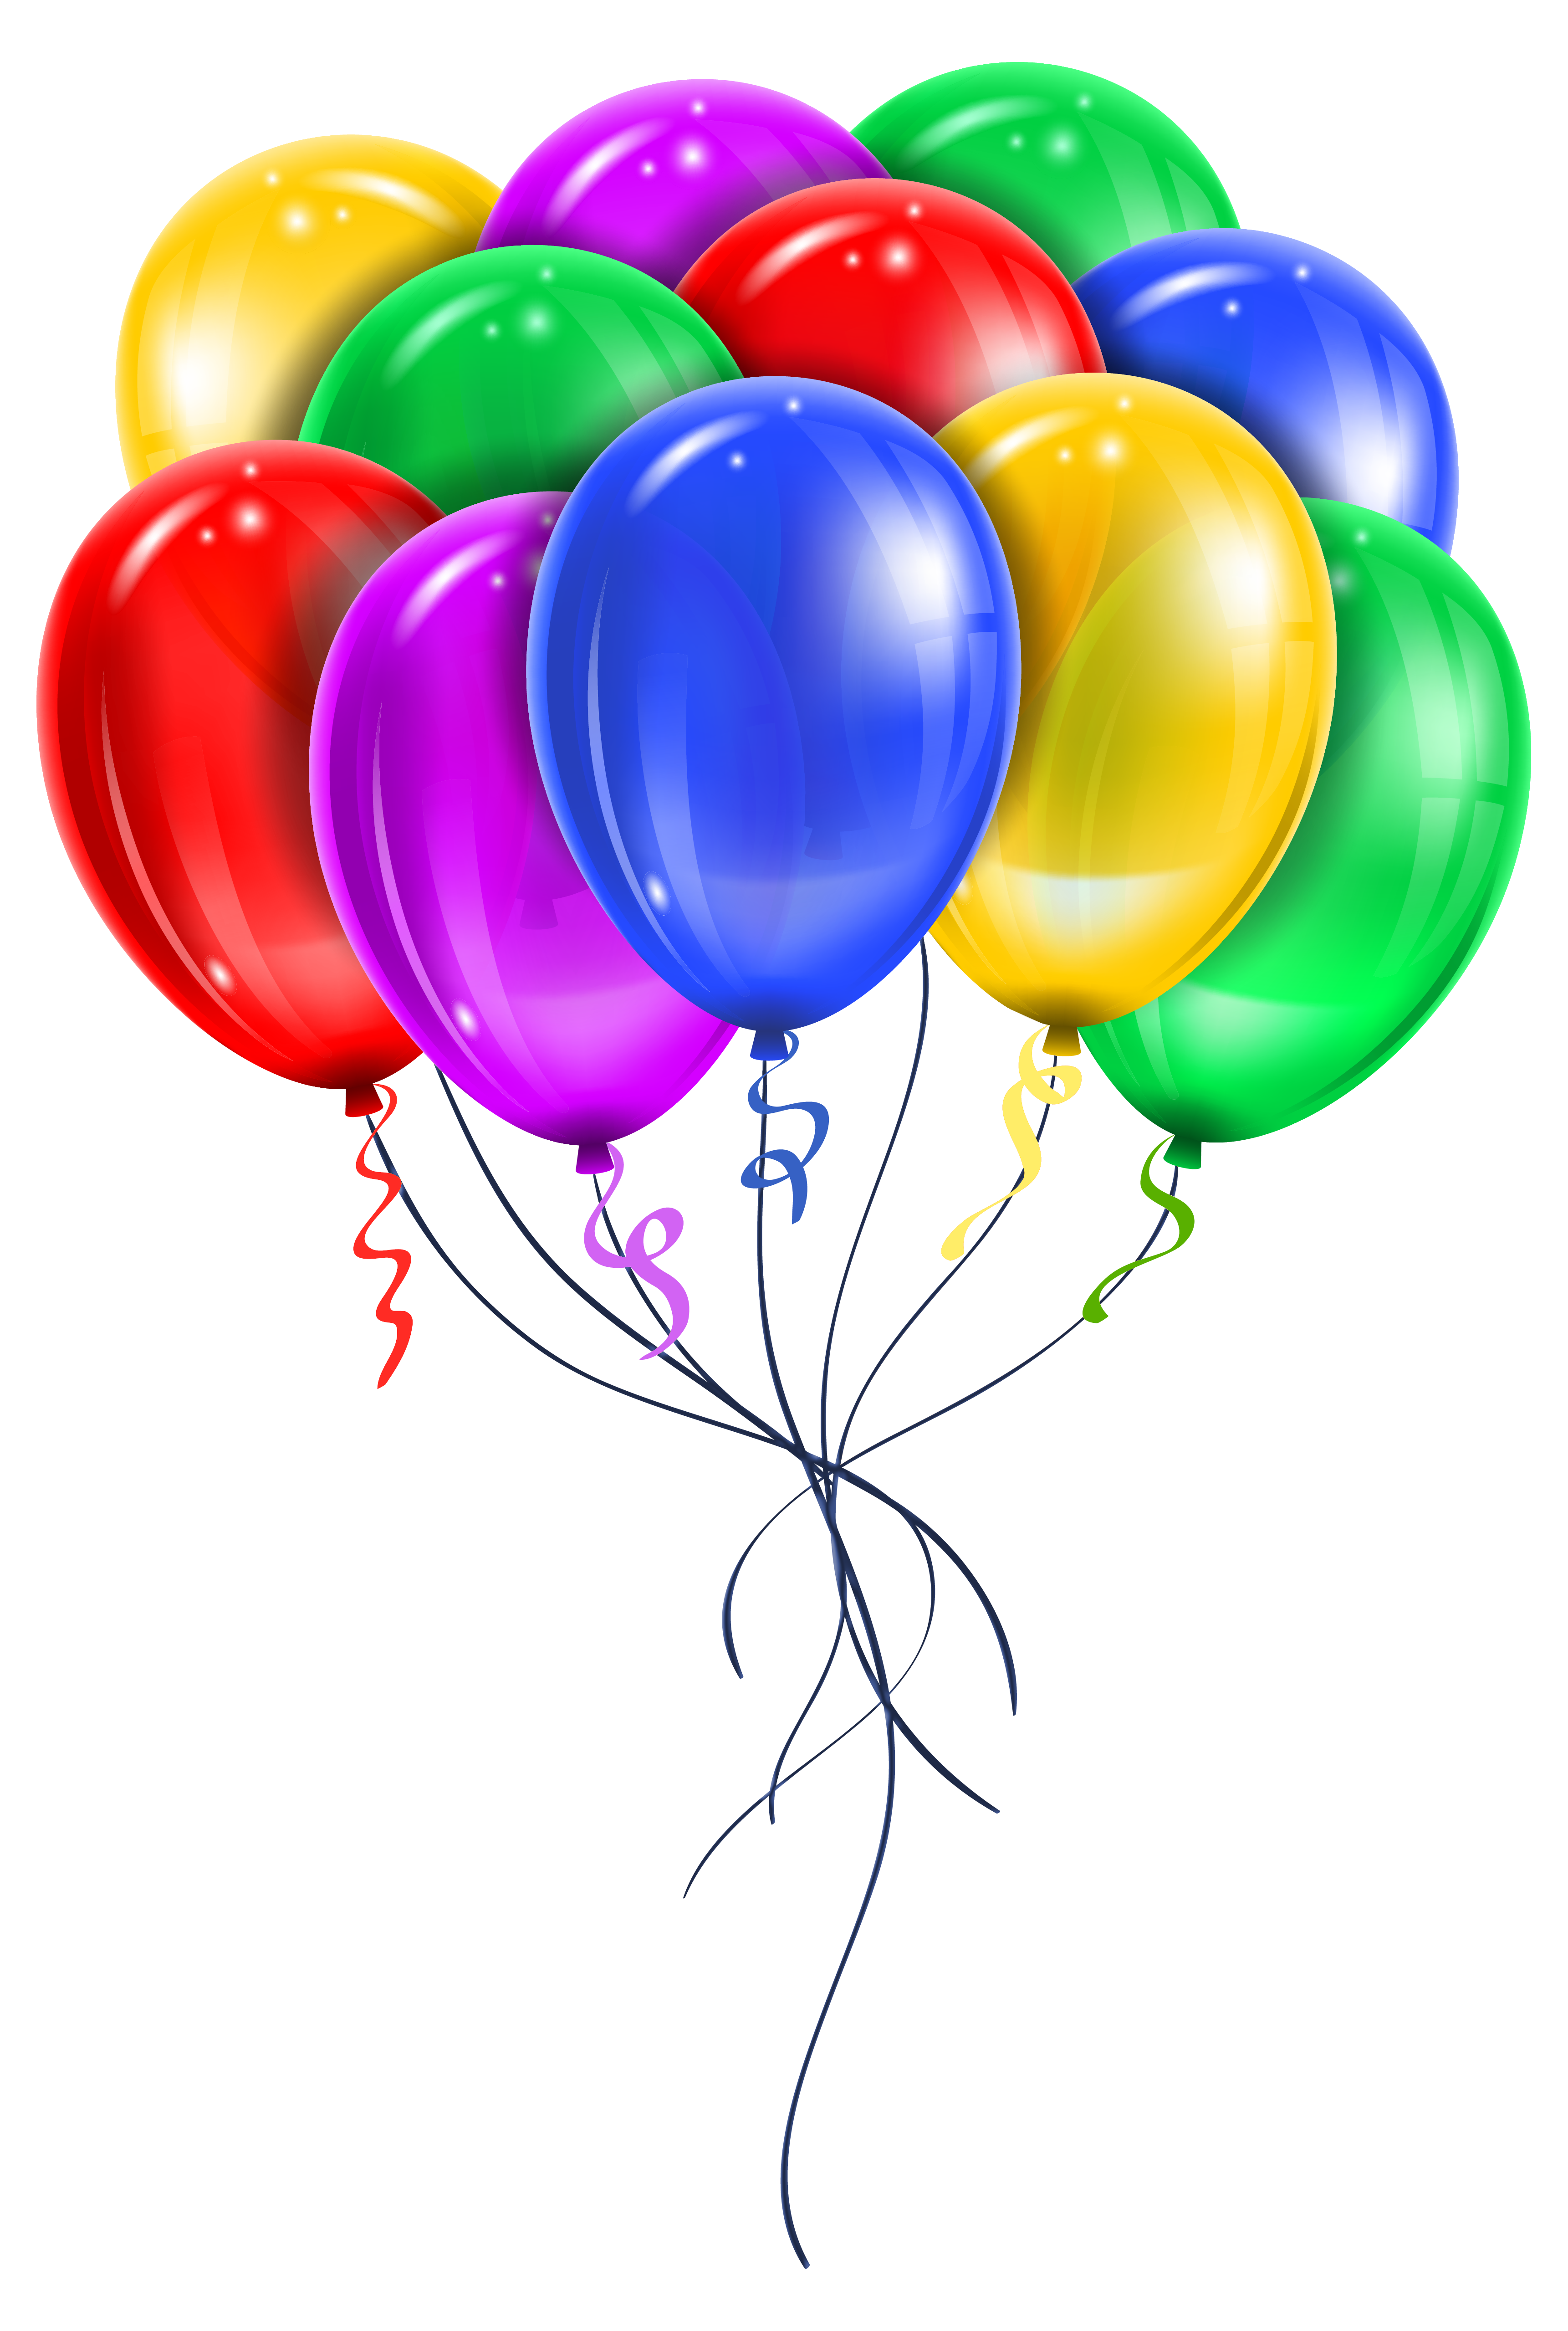 Color clipart balloon On Picture Art Transparent Multi